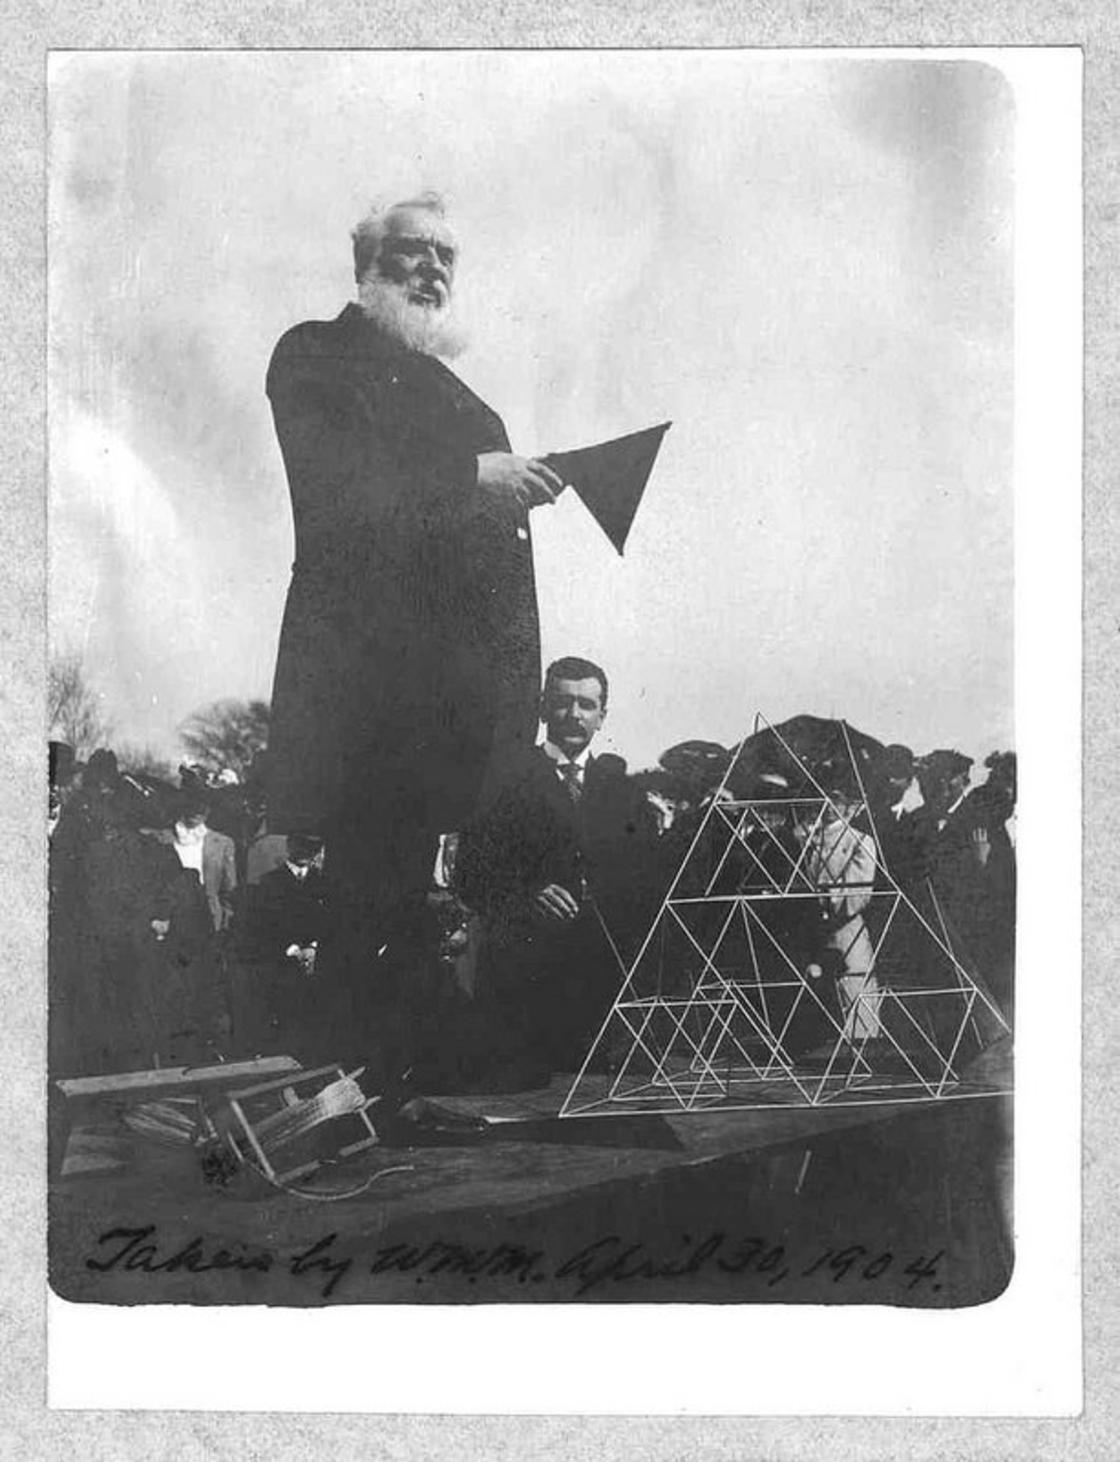 "alexander graham bell and the kite These readings and activities introduce vocabulary, information, and concepts about alexander graham bell, his invention of the tetrahedral kite, and the role bell and his ""tetras"" played in an era of aeronautical experimentation."